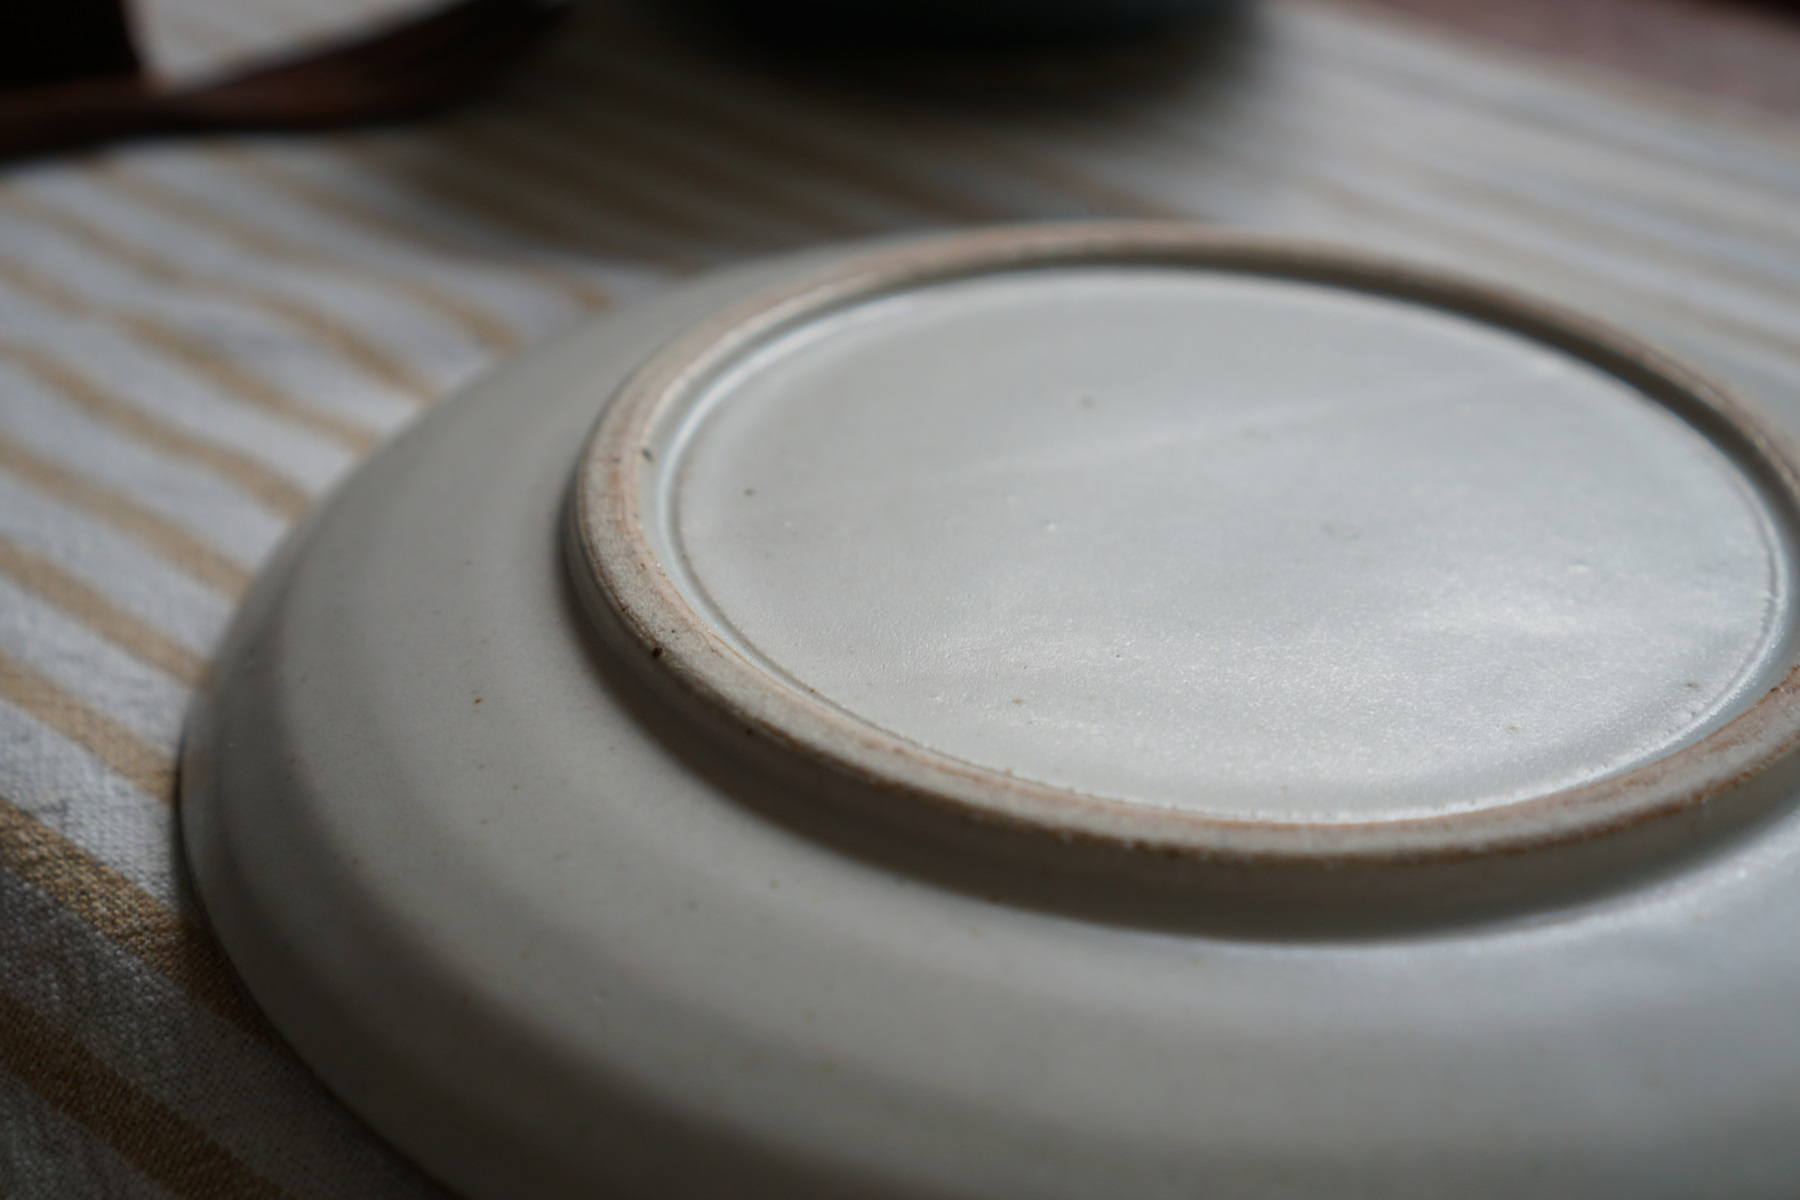 I love this plate's simple rustic beauty.  You will not be disappointed with this plate.